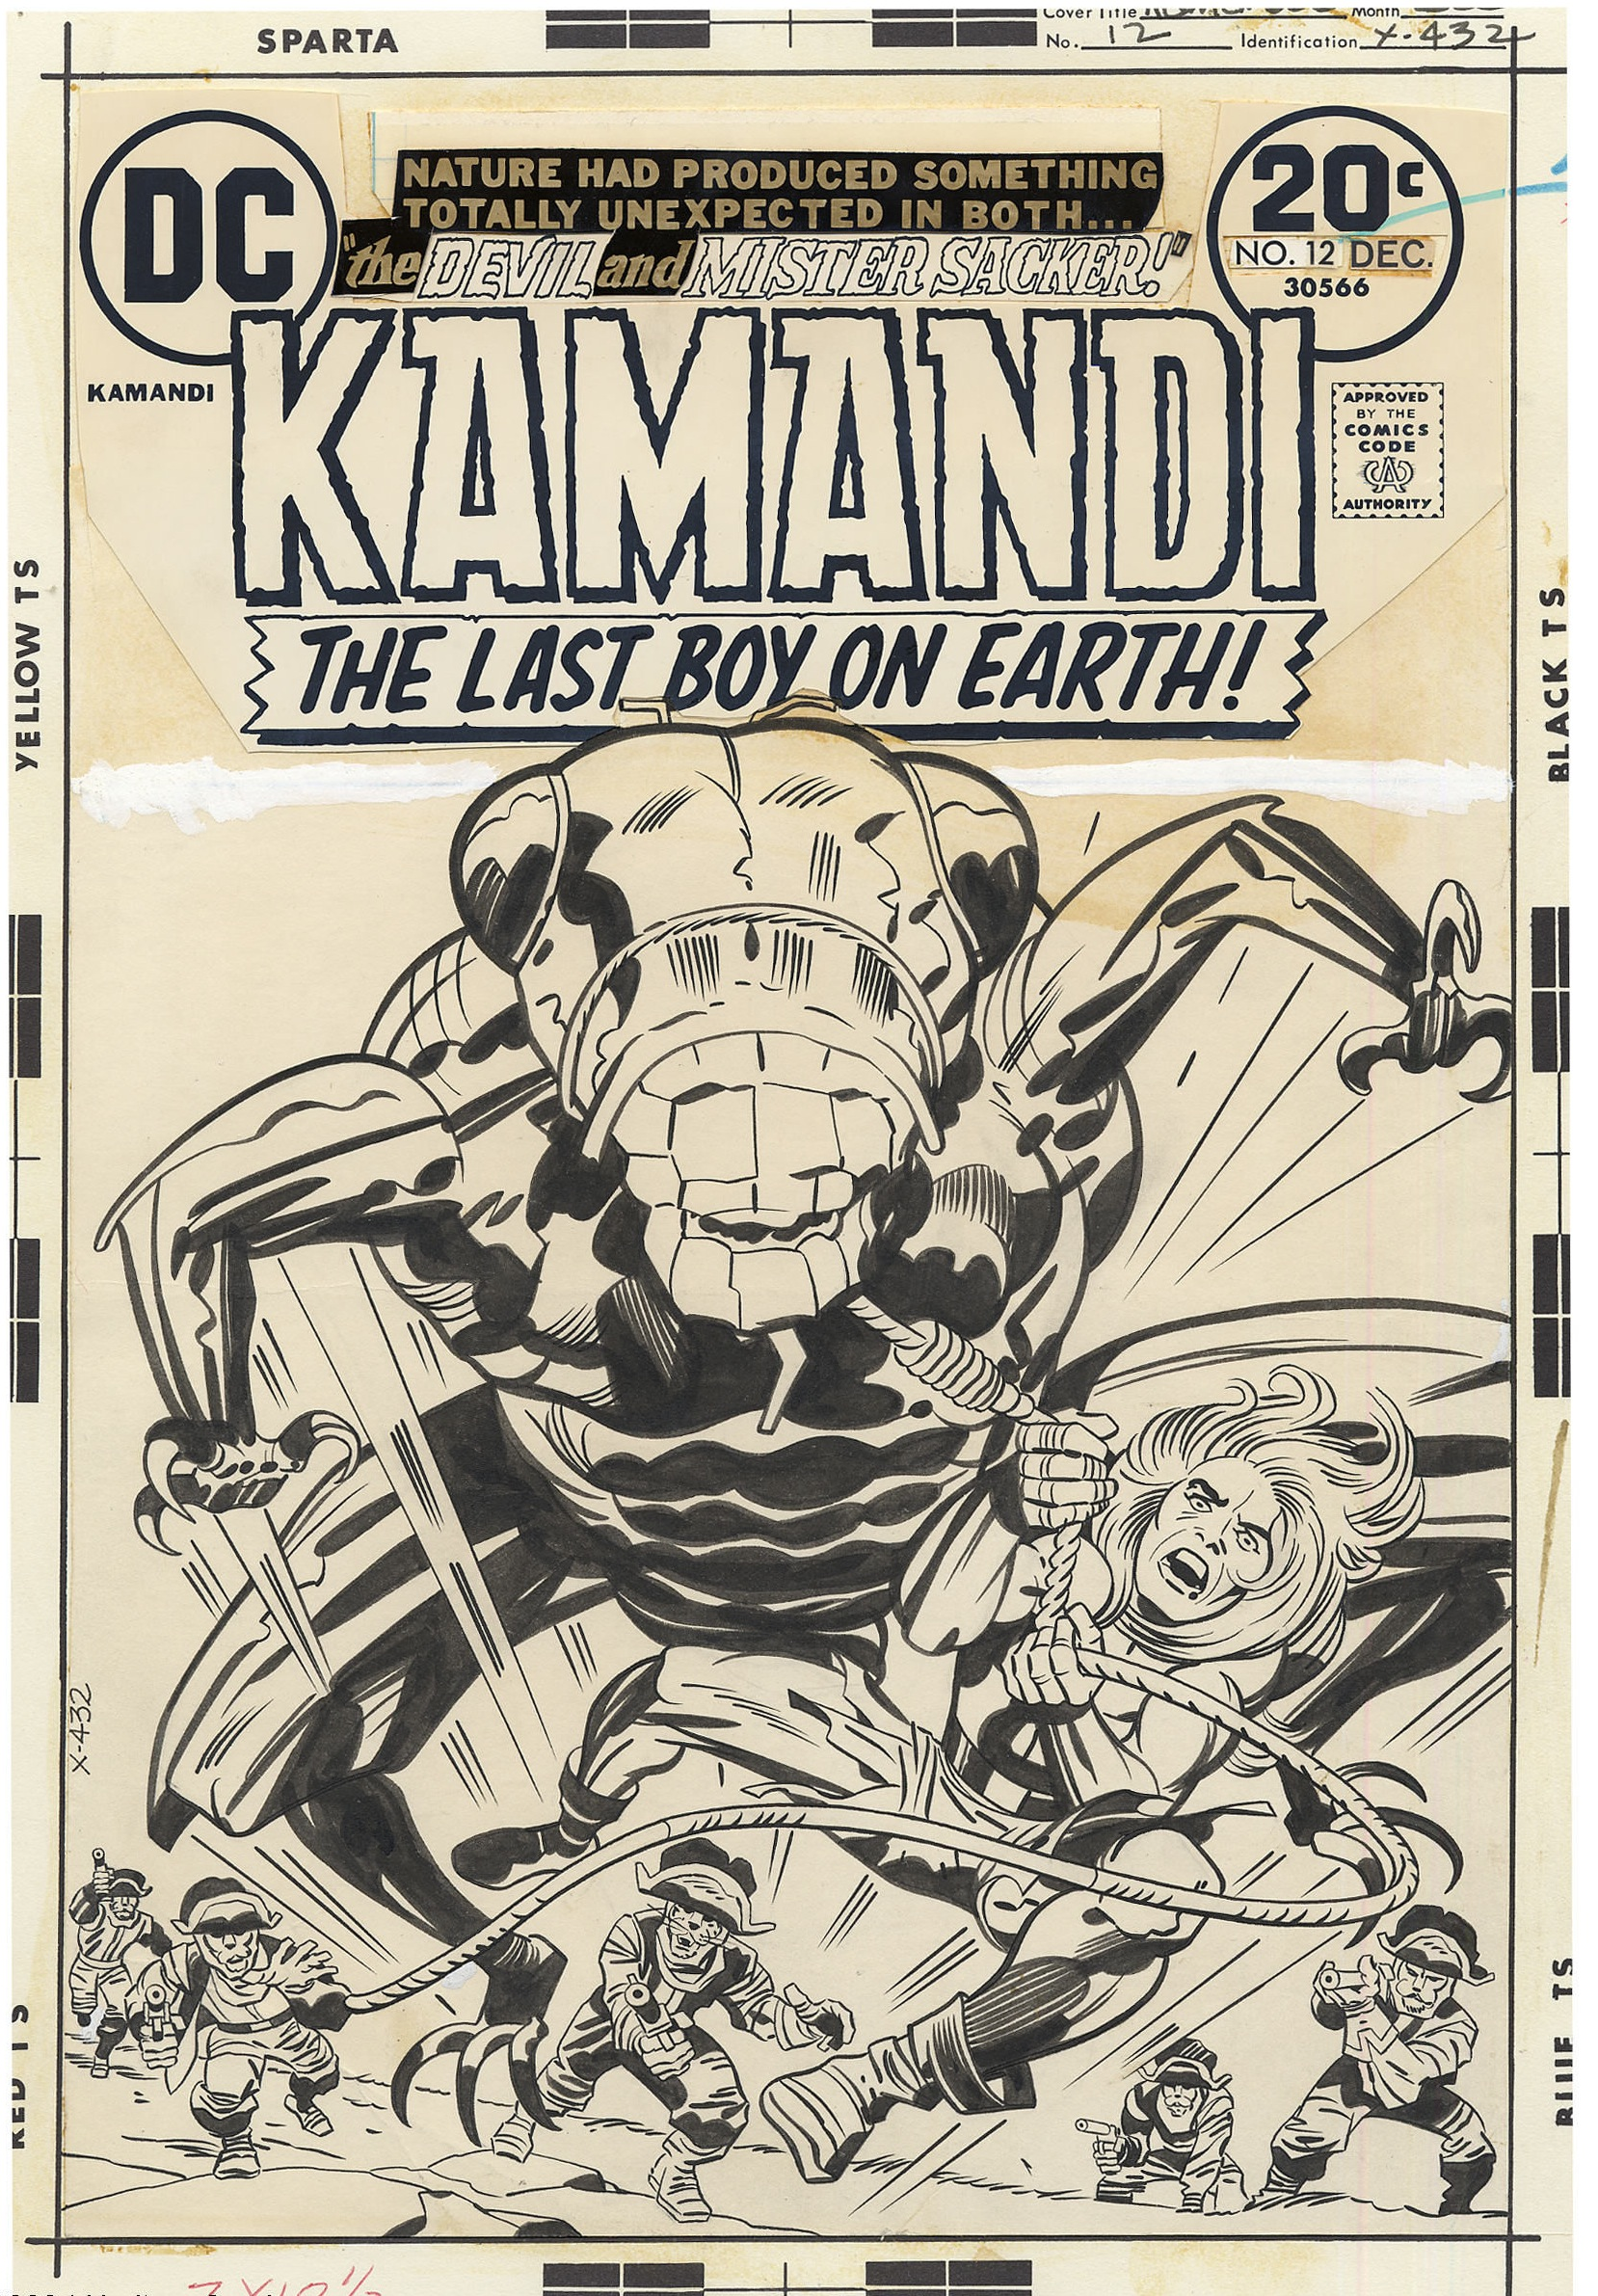 Jack Kirby Kamandi Artist Edition 2 review